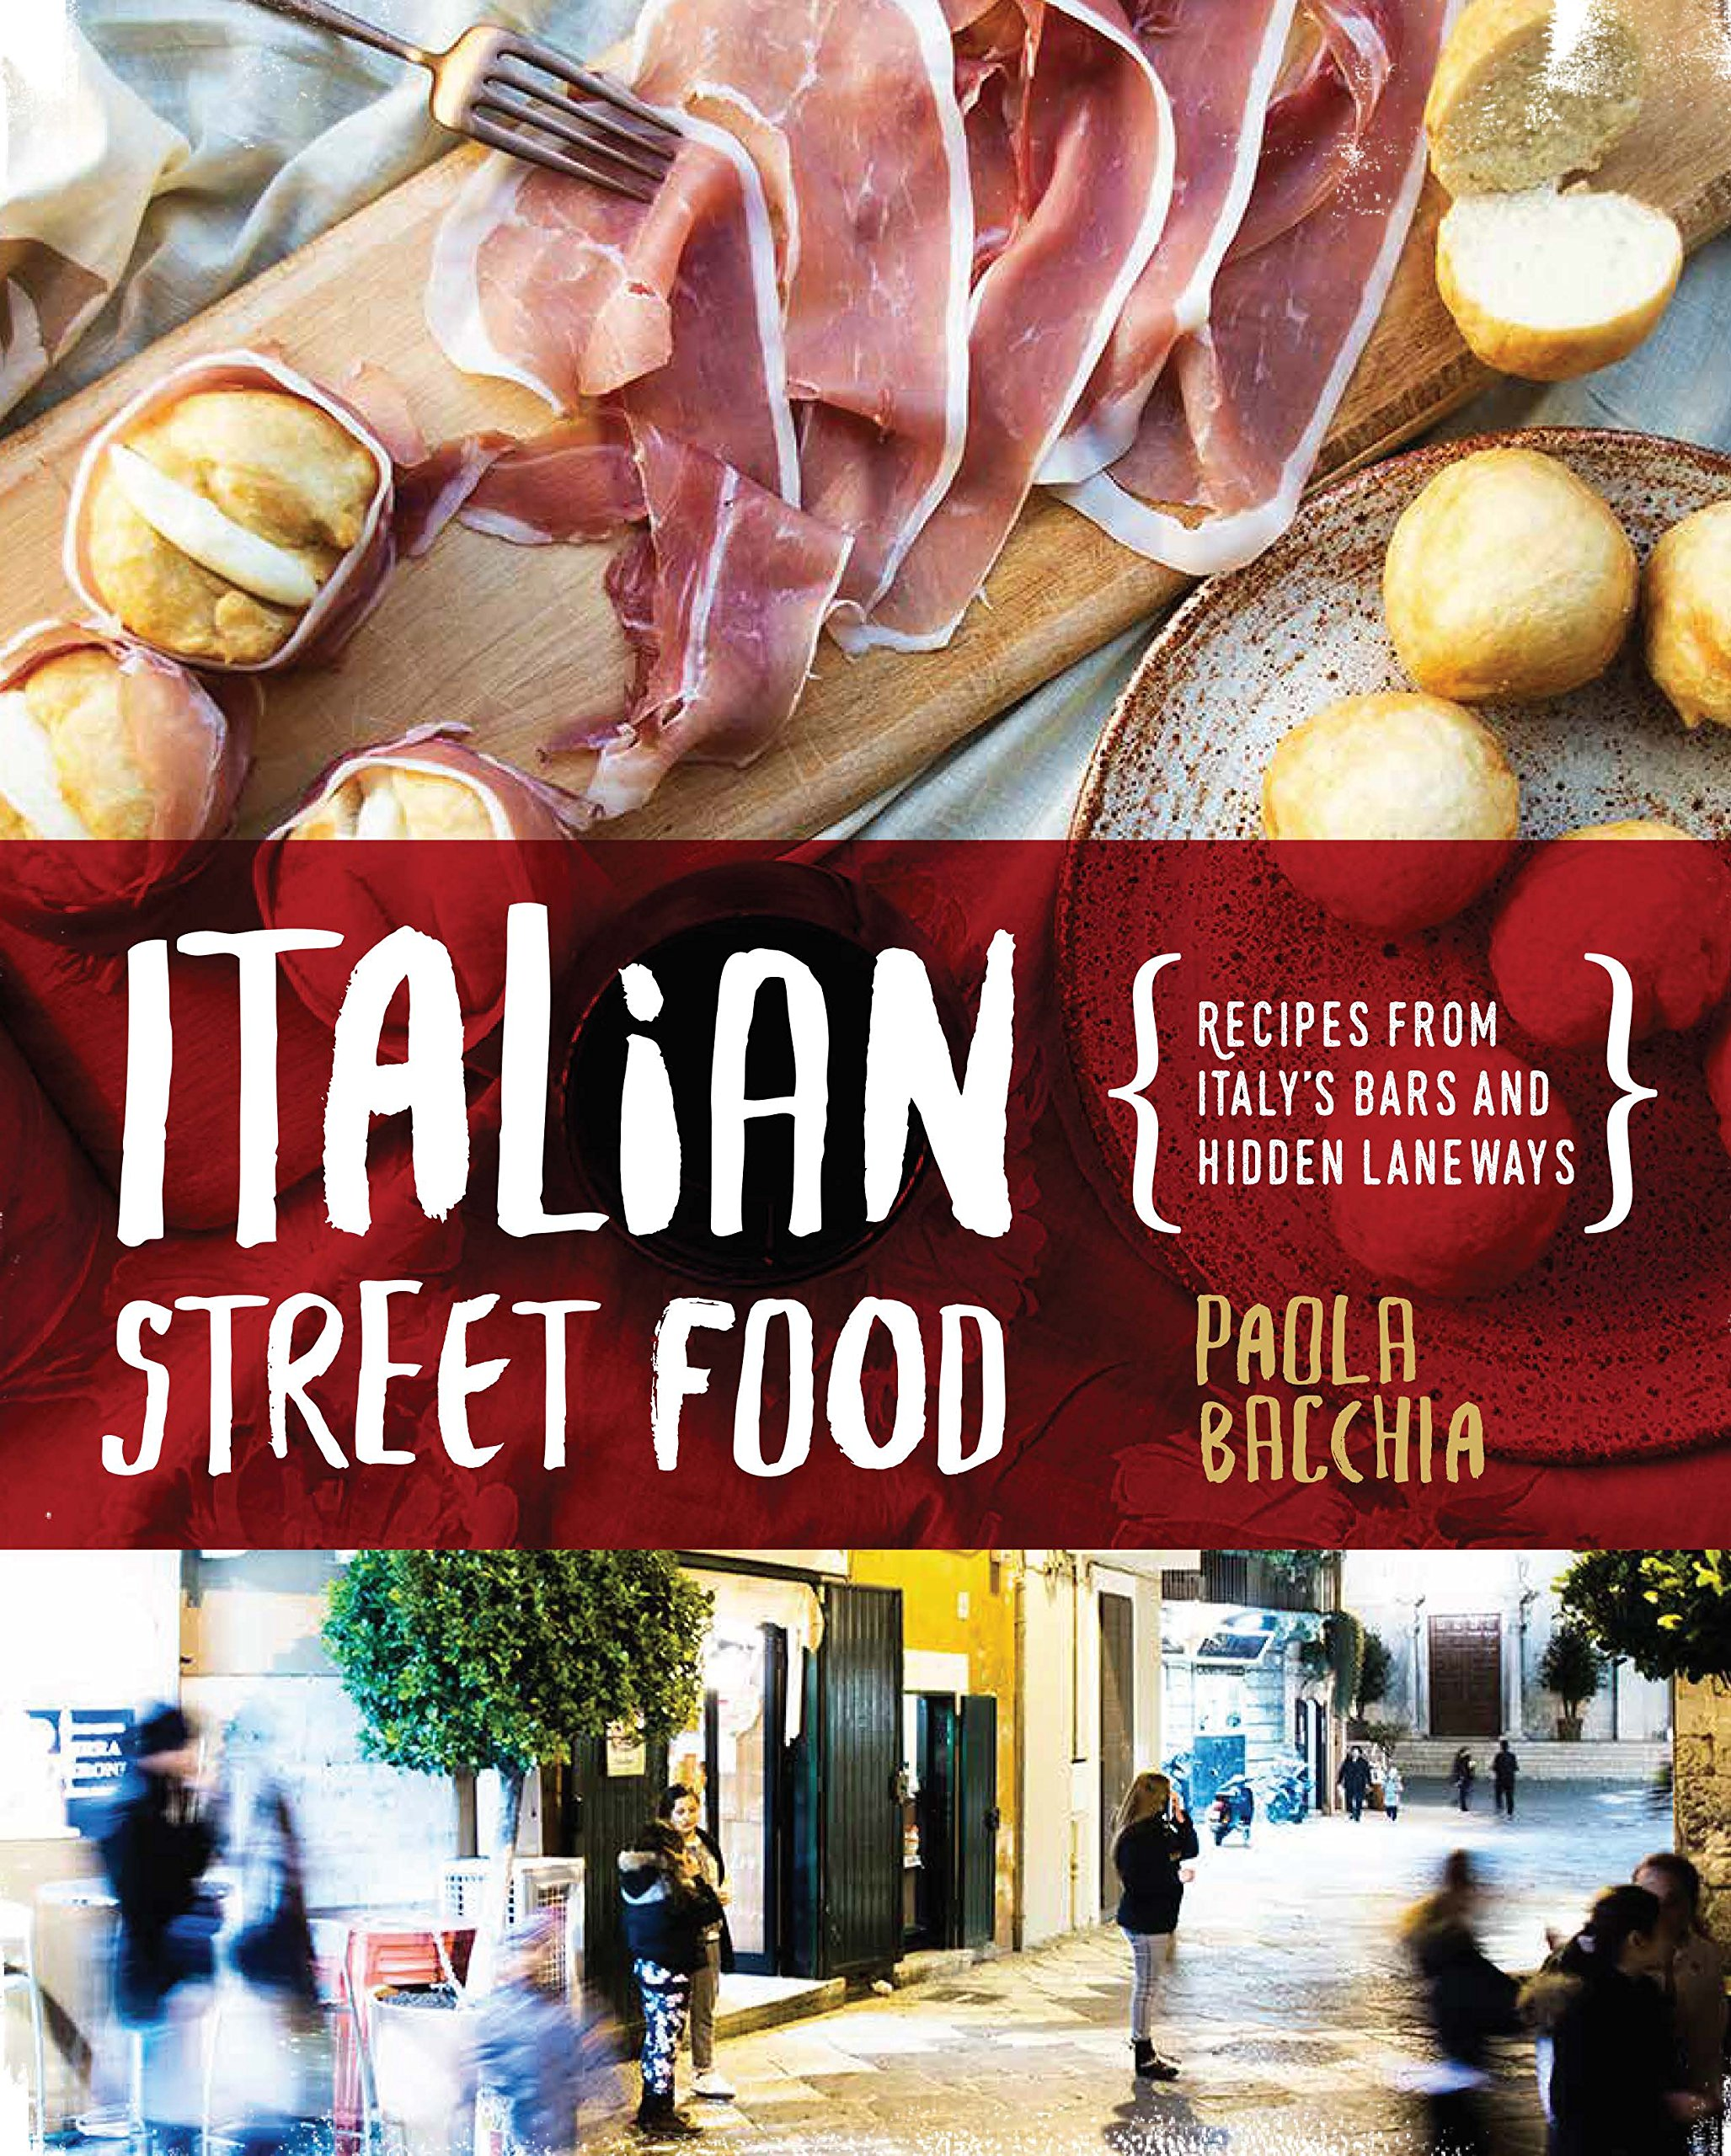 Italian street food recipes from italys bars and hidden laneways italian street food recipes from italys bars and hidden laneways paola bacchia 9781925418187 amazon books forumfinder Gallery